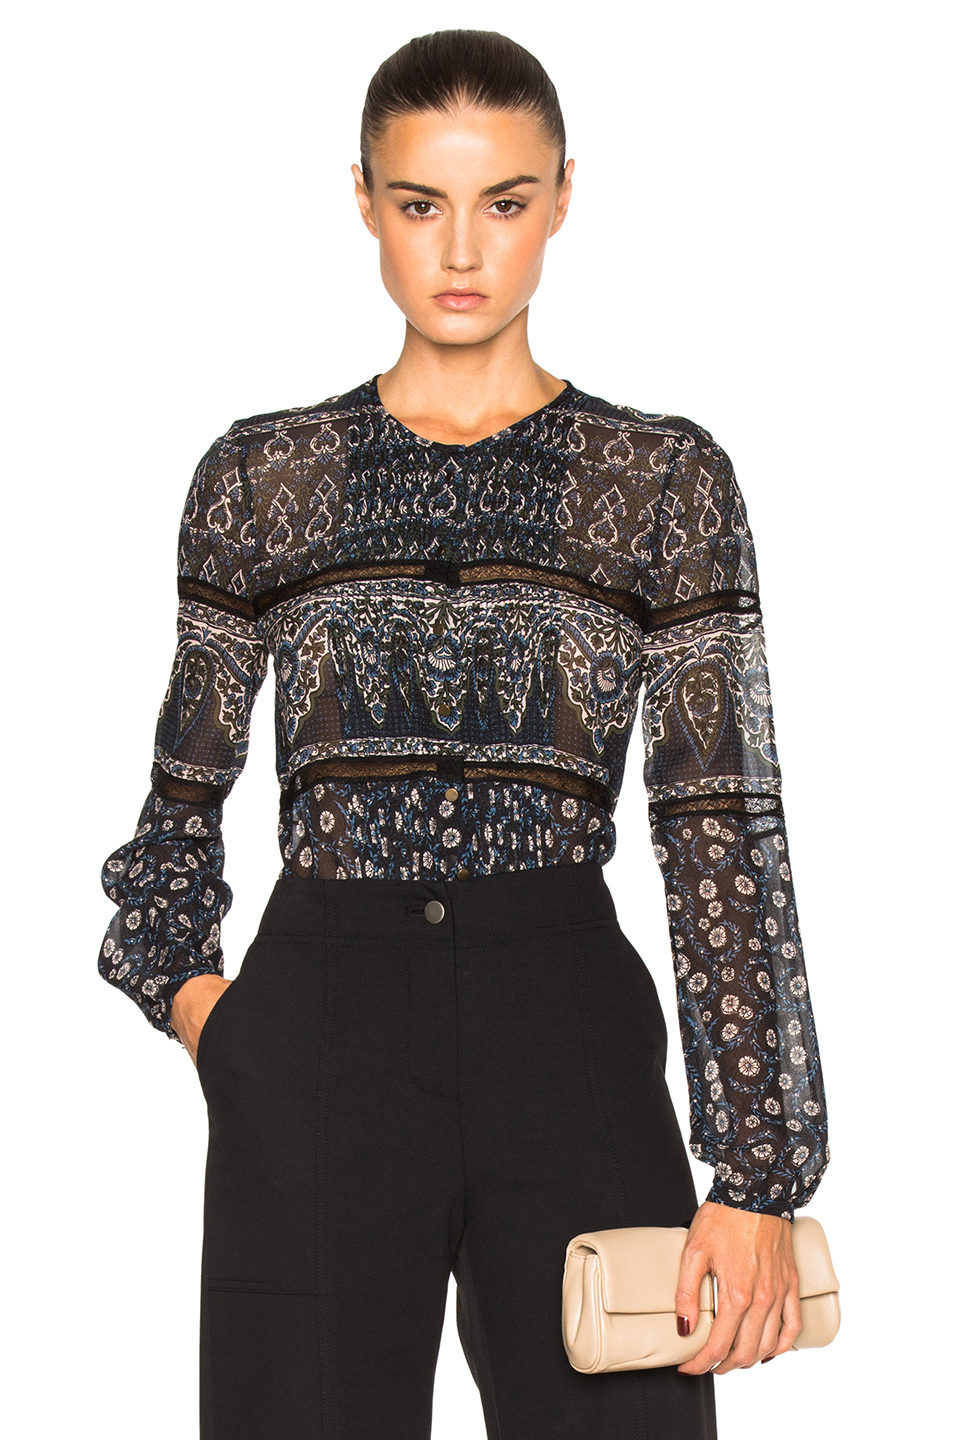 Veronica Beard Daisy Lace Top in Blue,Floral